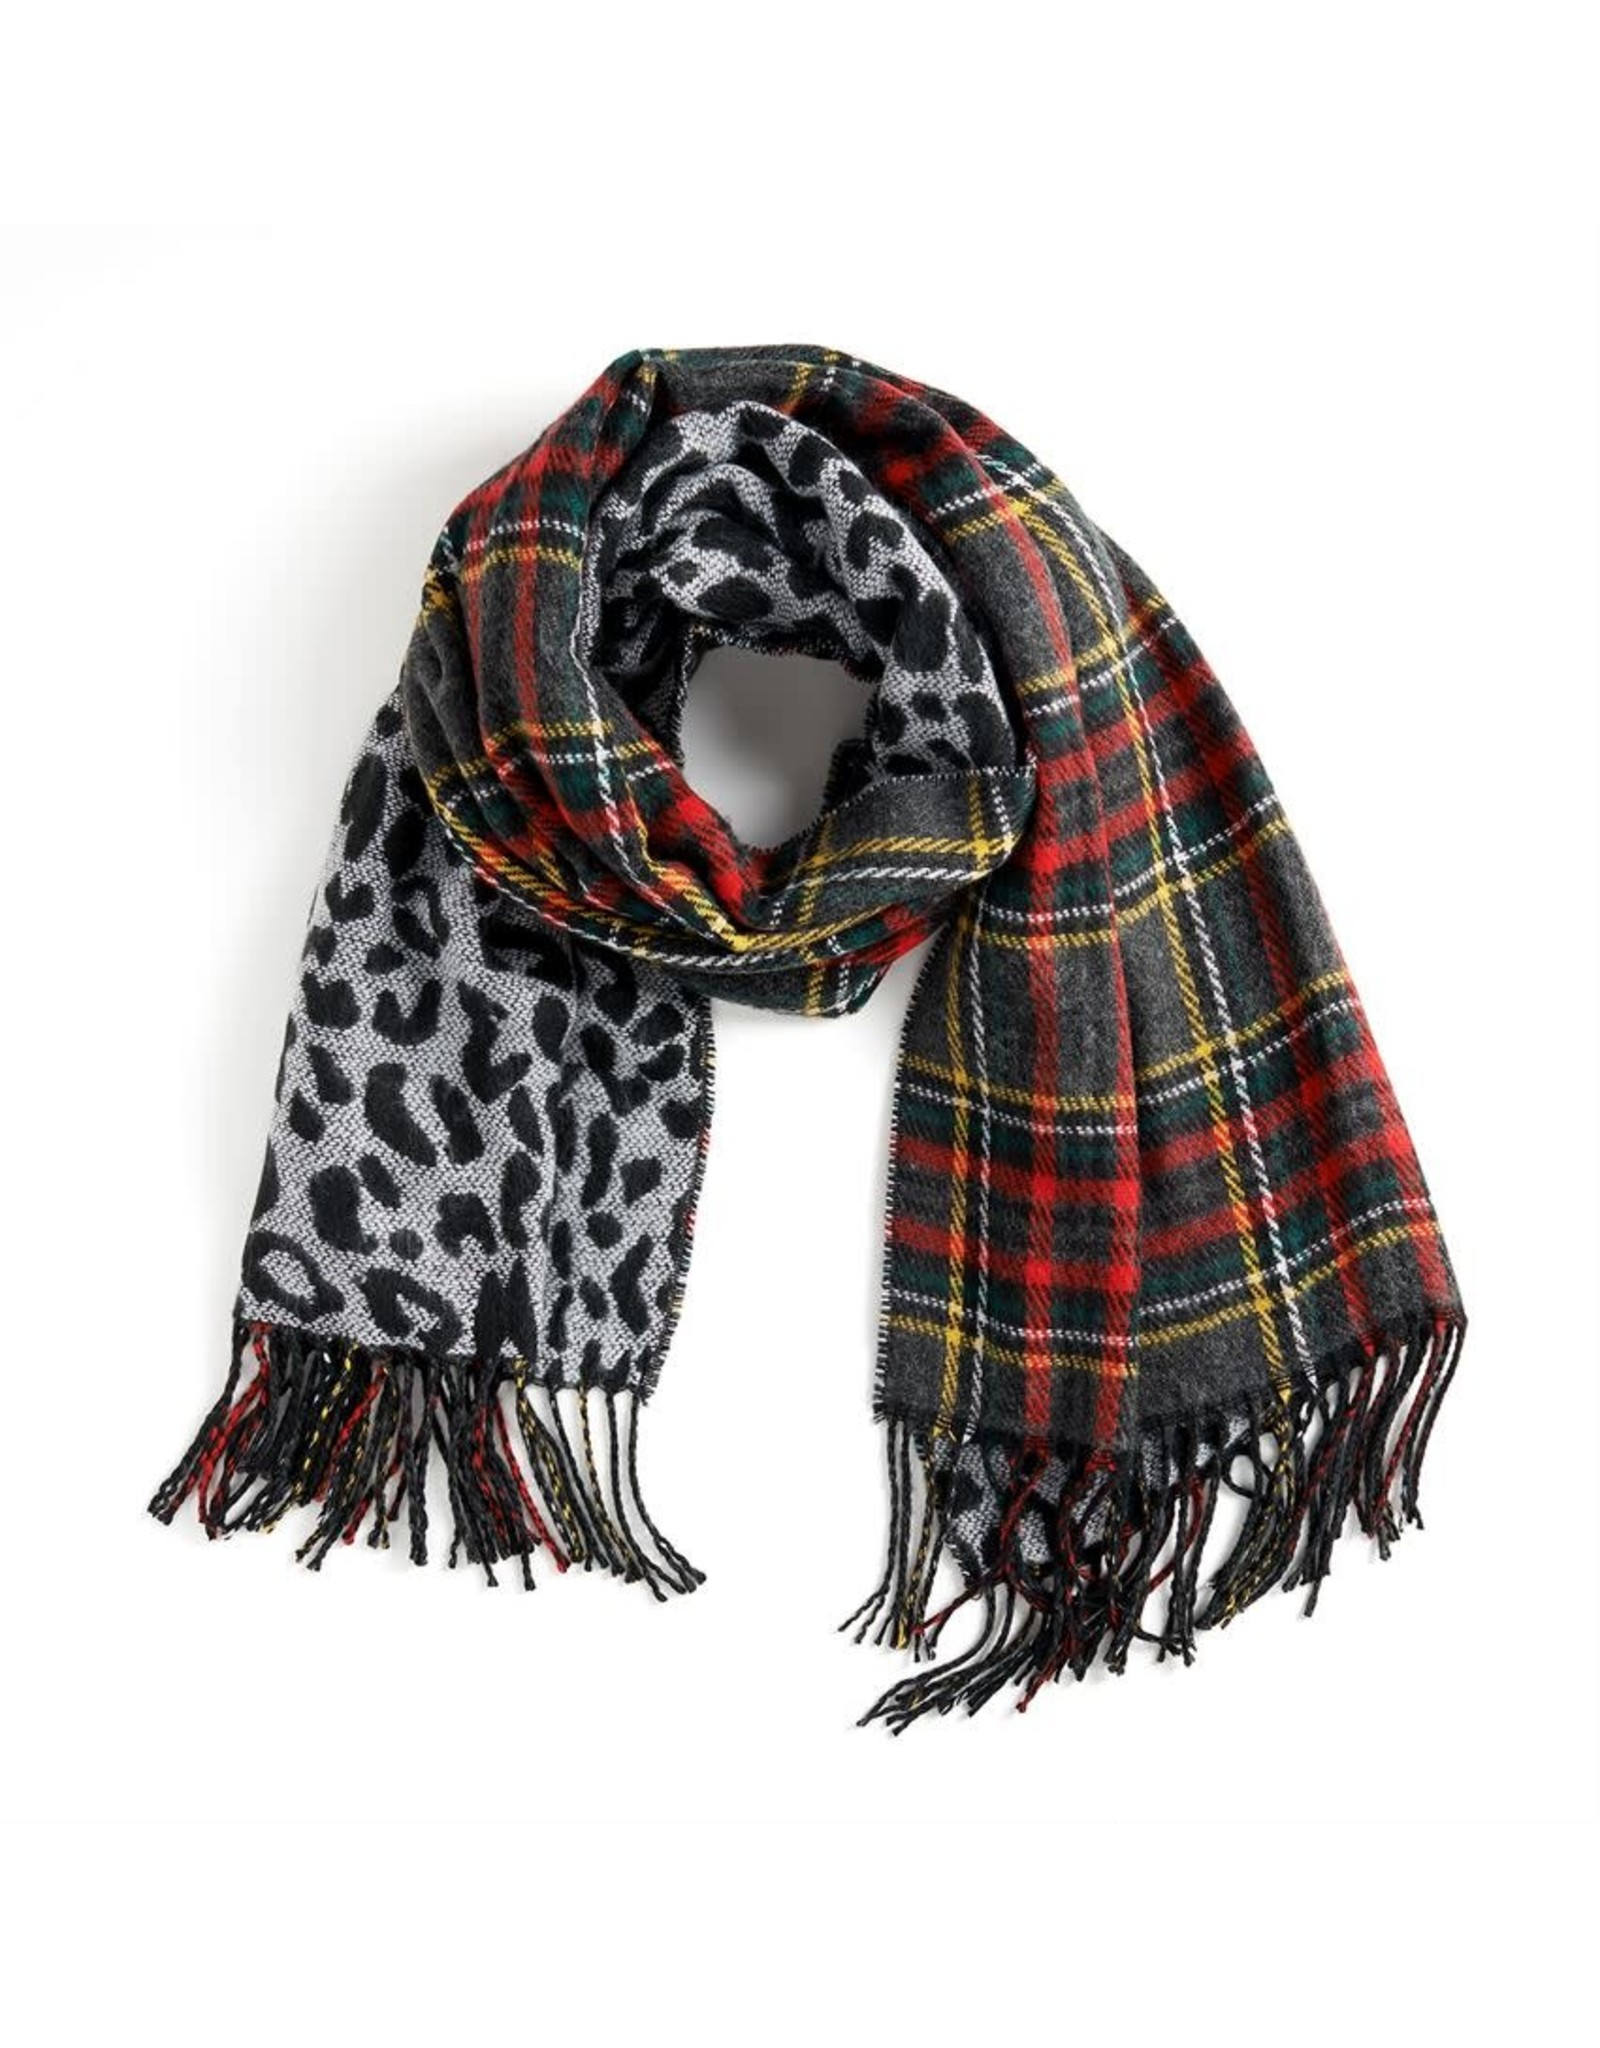 TGB / Good Bead ABOUT FACE REVERSIBLE OBLONG SCARF BLACK RED & LEPORD